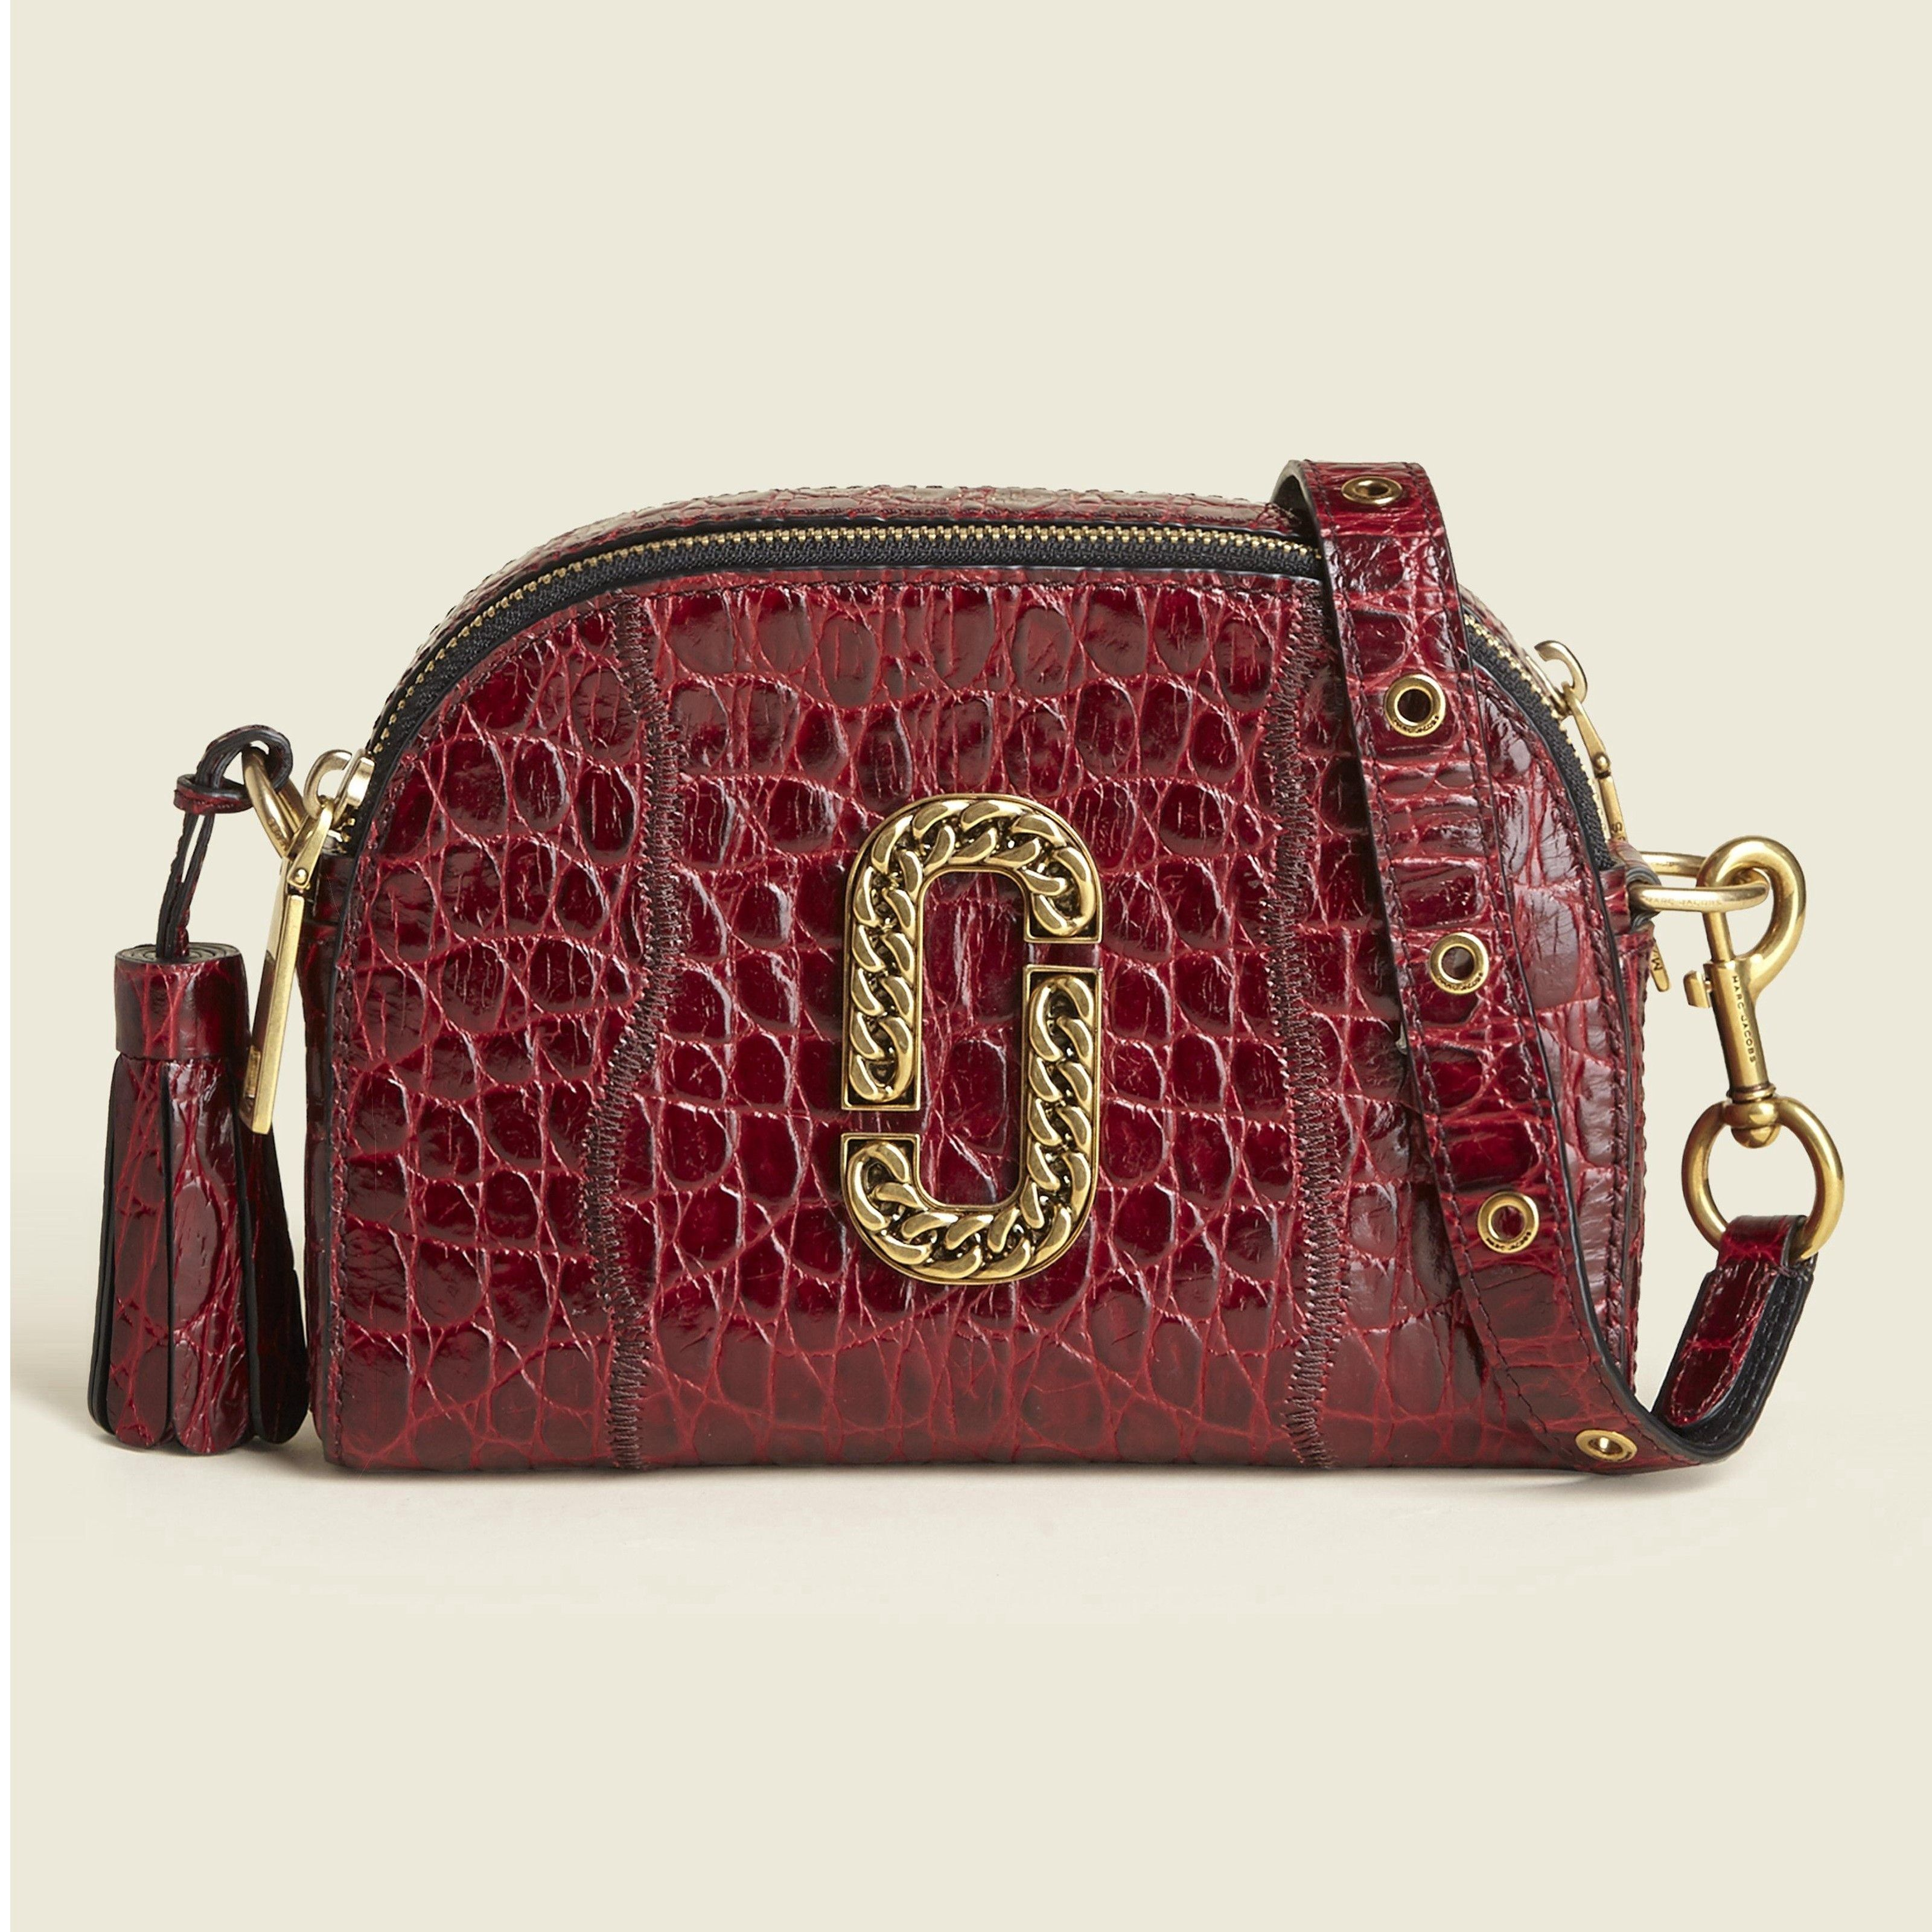 27bdf679b733 MARC JACOBS Croc Embossed Shutter Small Camera Bag.  marcjacobs  bags   shoulder bags  leather  crossbody